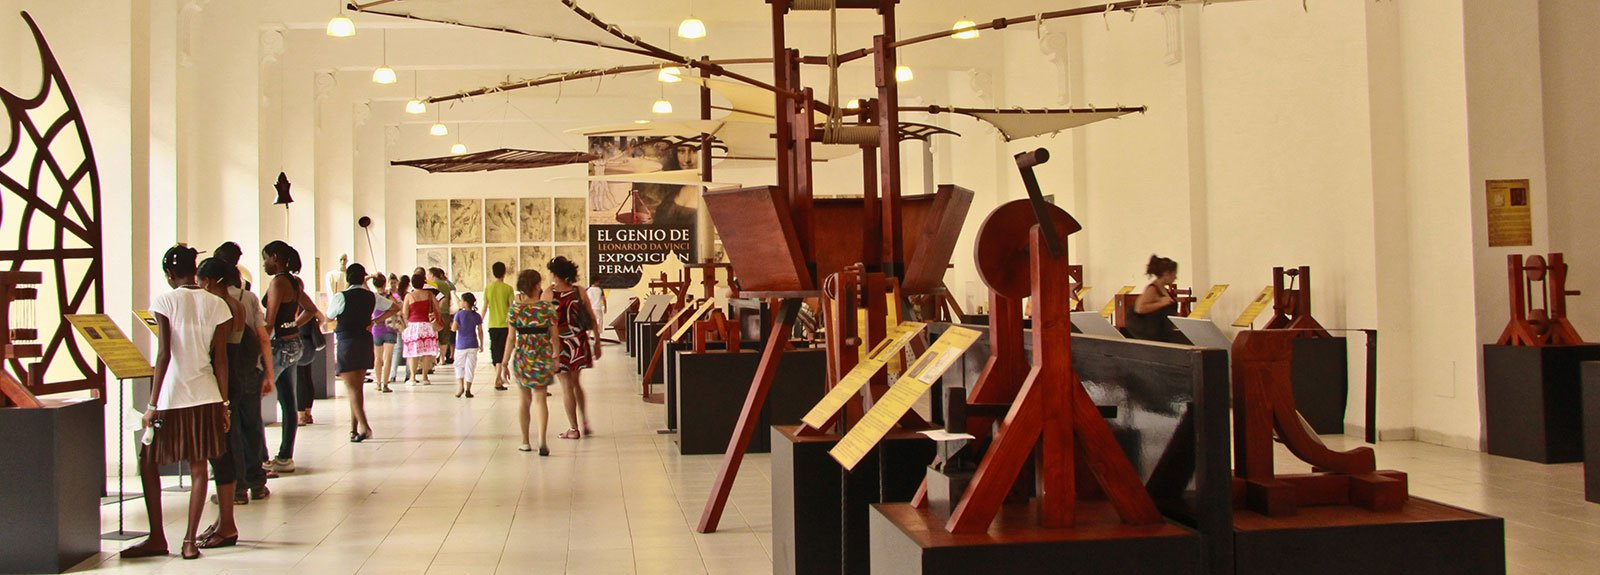 Exhibition of Davinci, wood artefacts